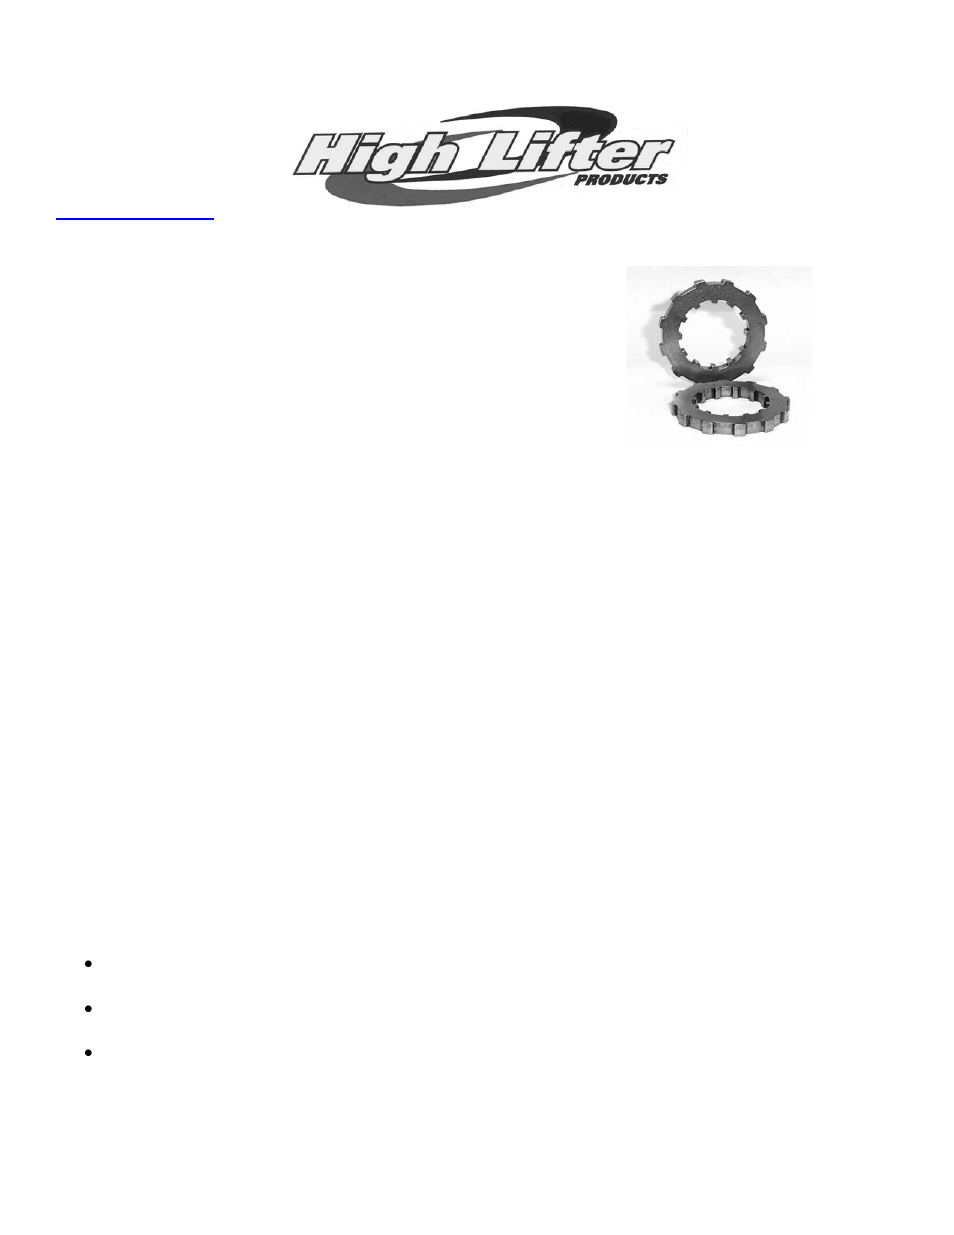 High Lifter SPOOL LOCKER HONDA ATV User Manual | 8 pages